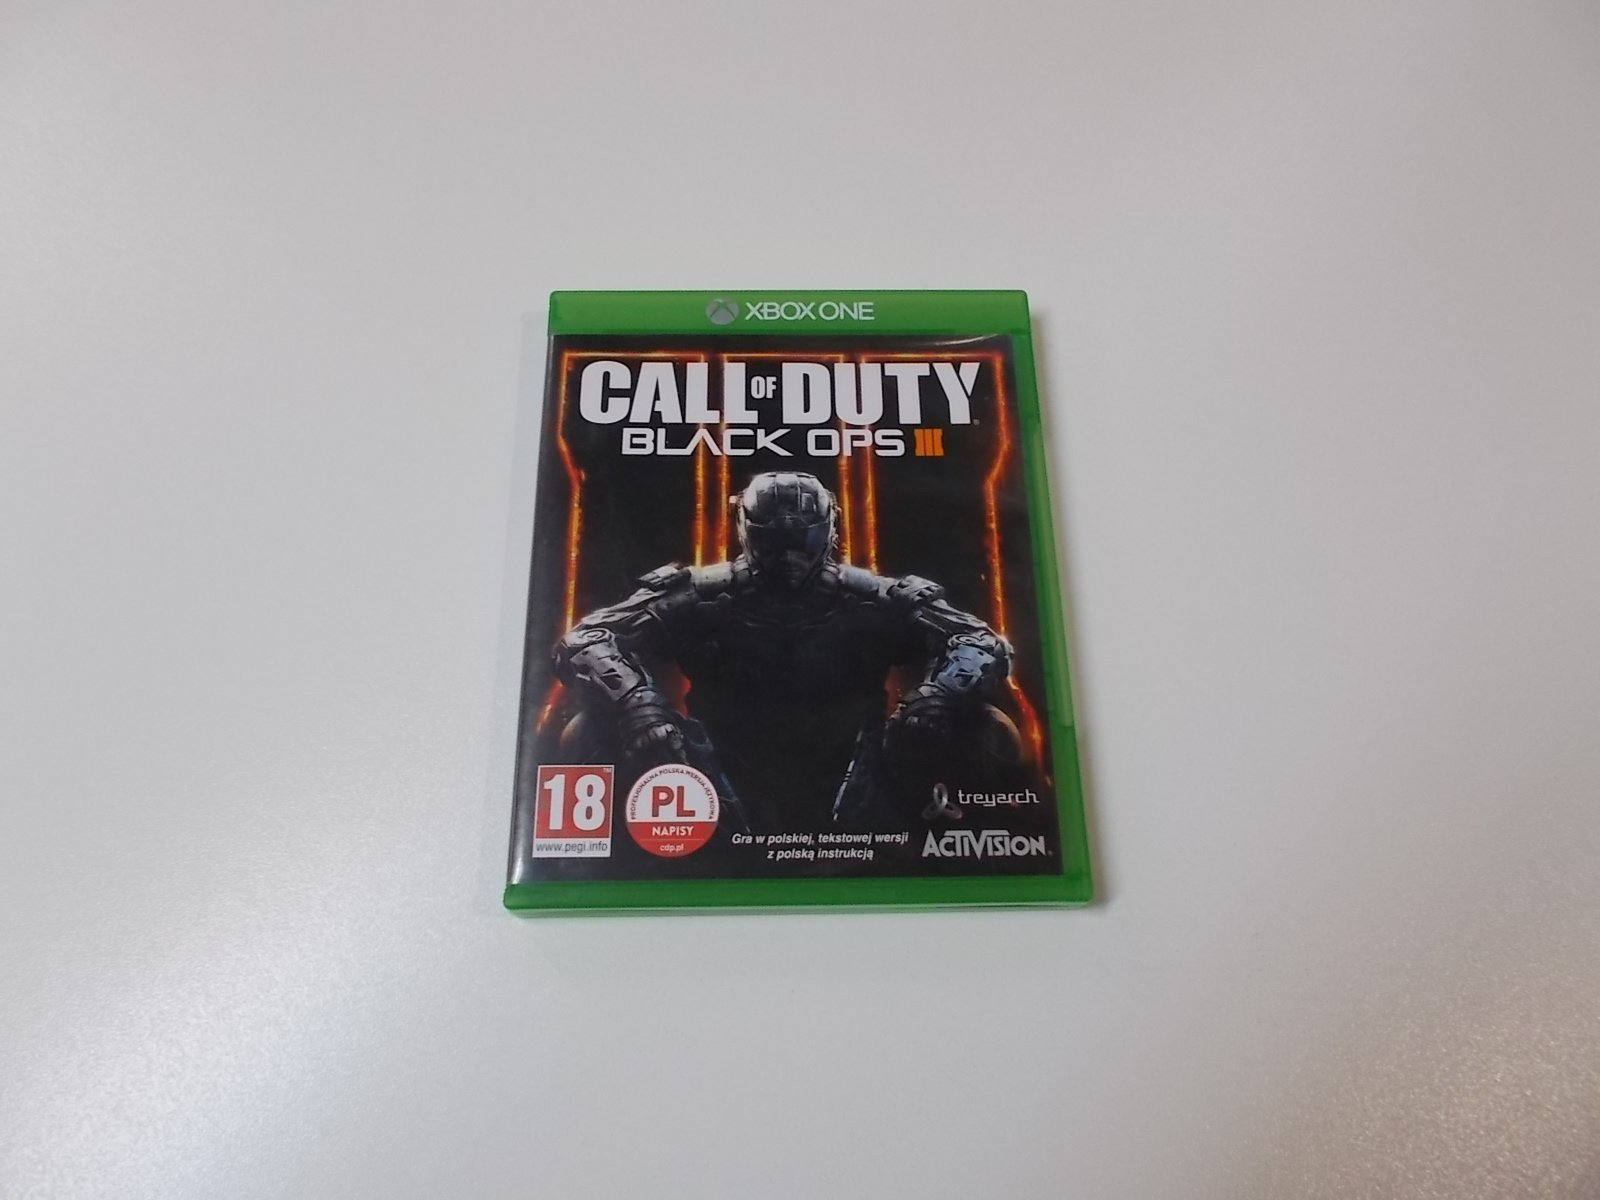 Call of Duty Black Ops III - GRA Xbox One - Opole 0460